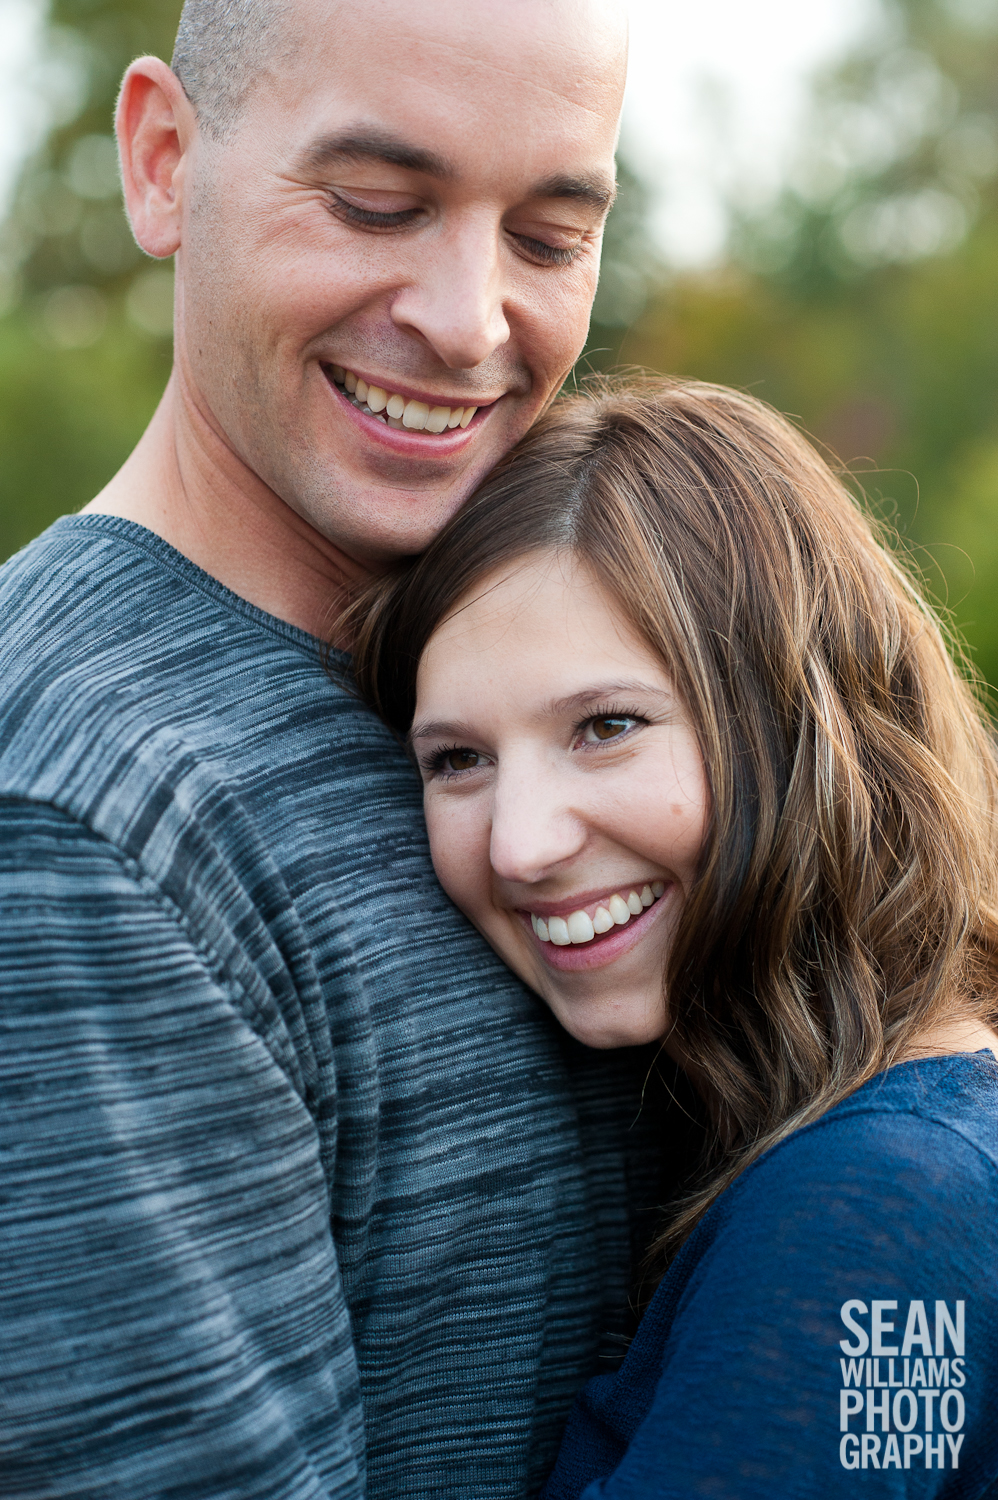 engagement-wedding-edmonton-photographer-sean-williams-love-15.jpg